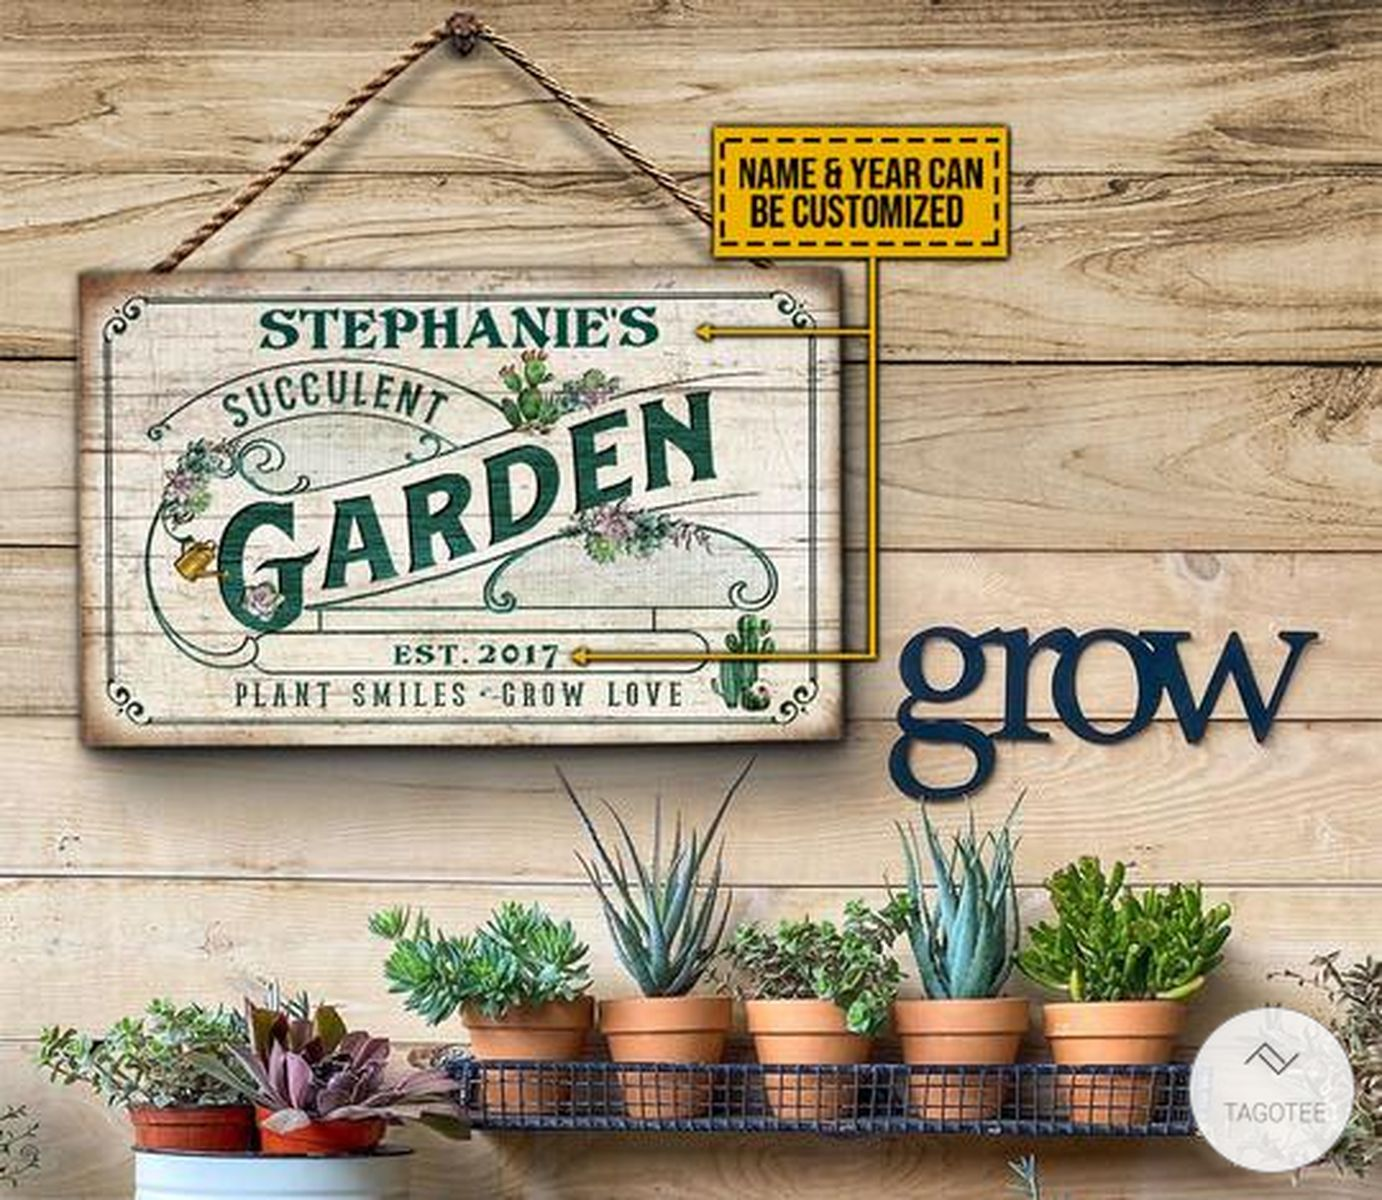 Personalized Succulent Garden Plants - Smiles - Grow Love Rectangle Wood Sign